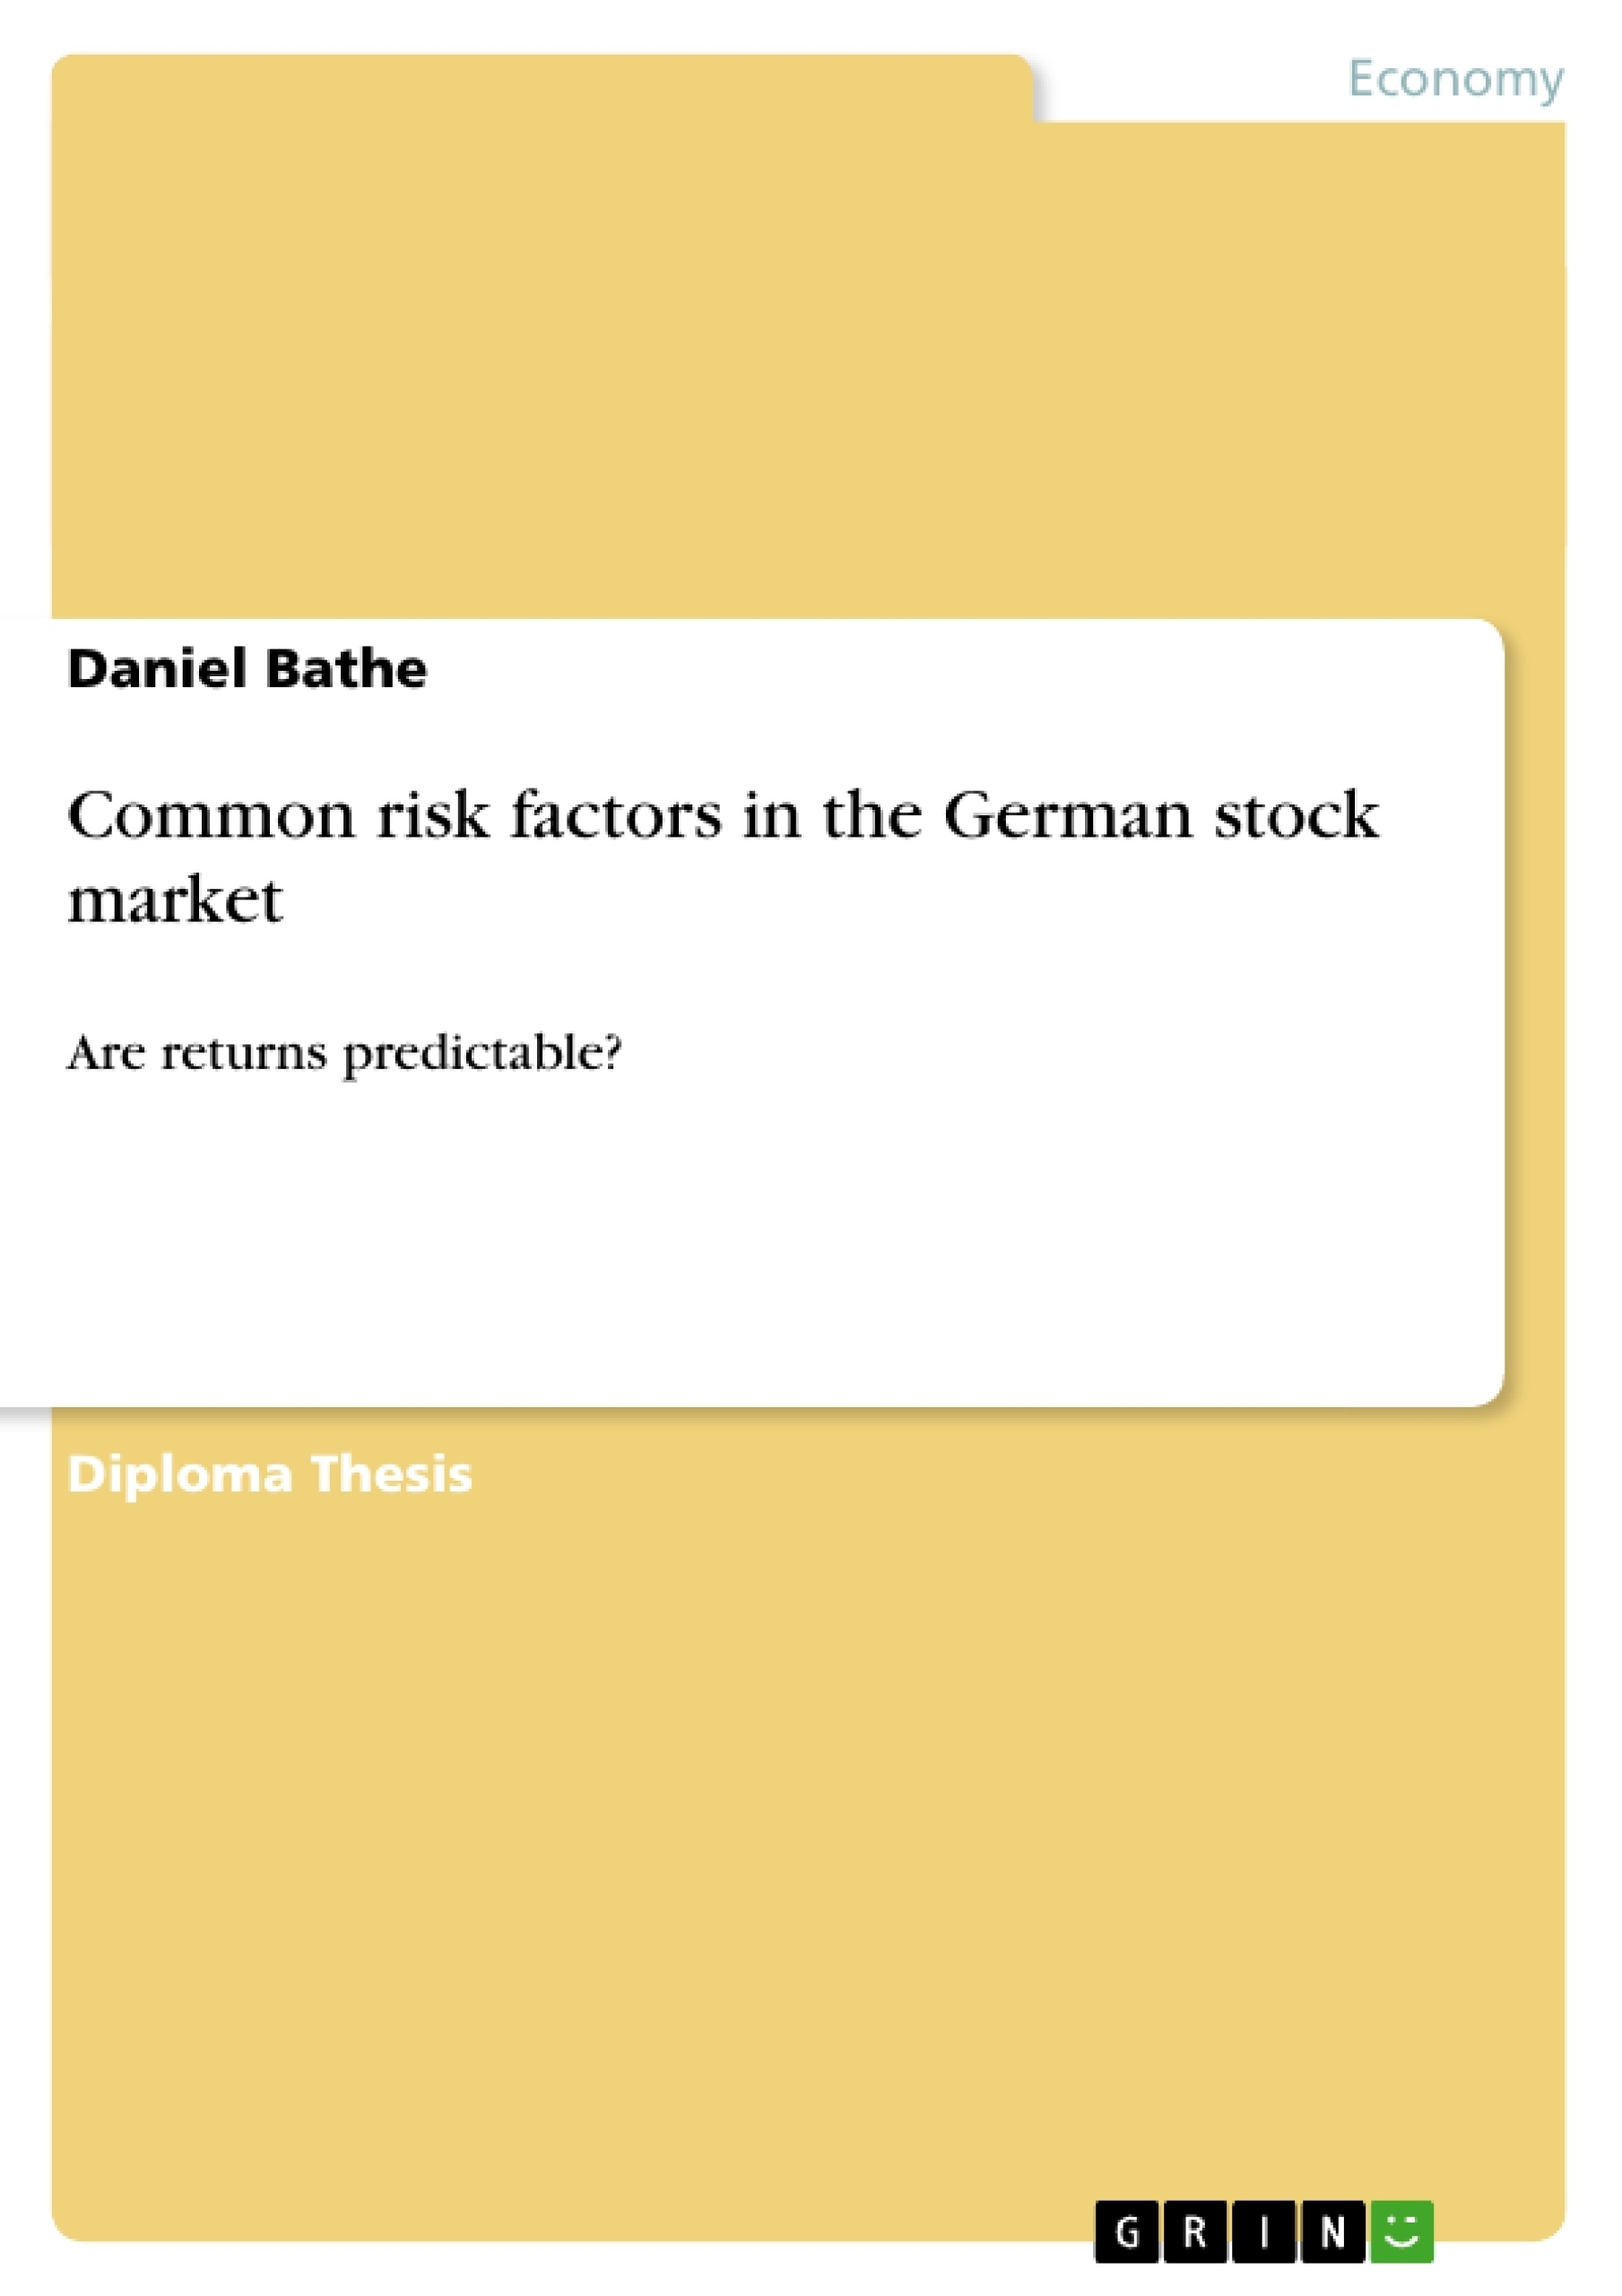 Title: Common risk factors in the German stock market